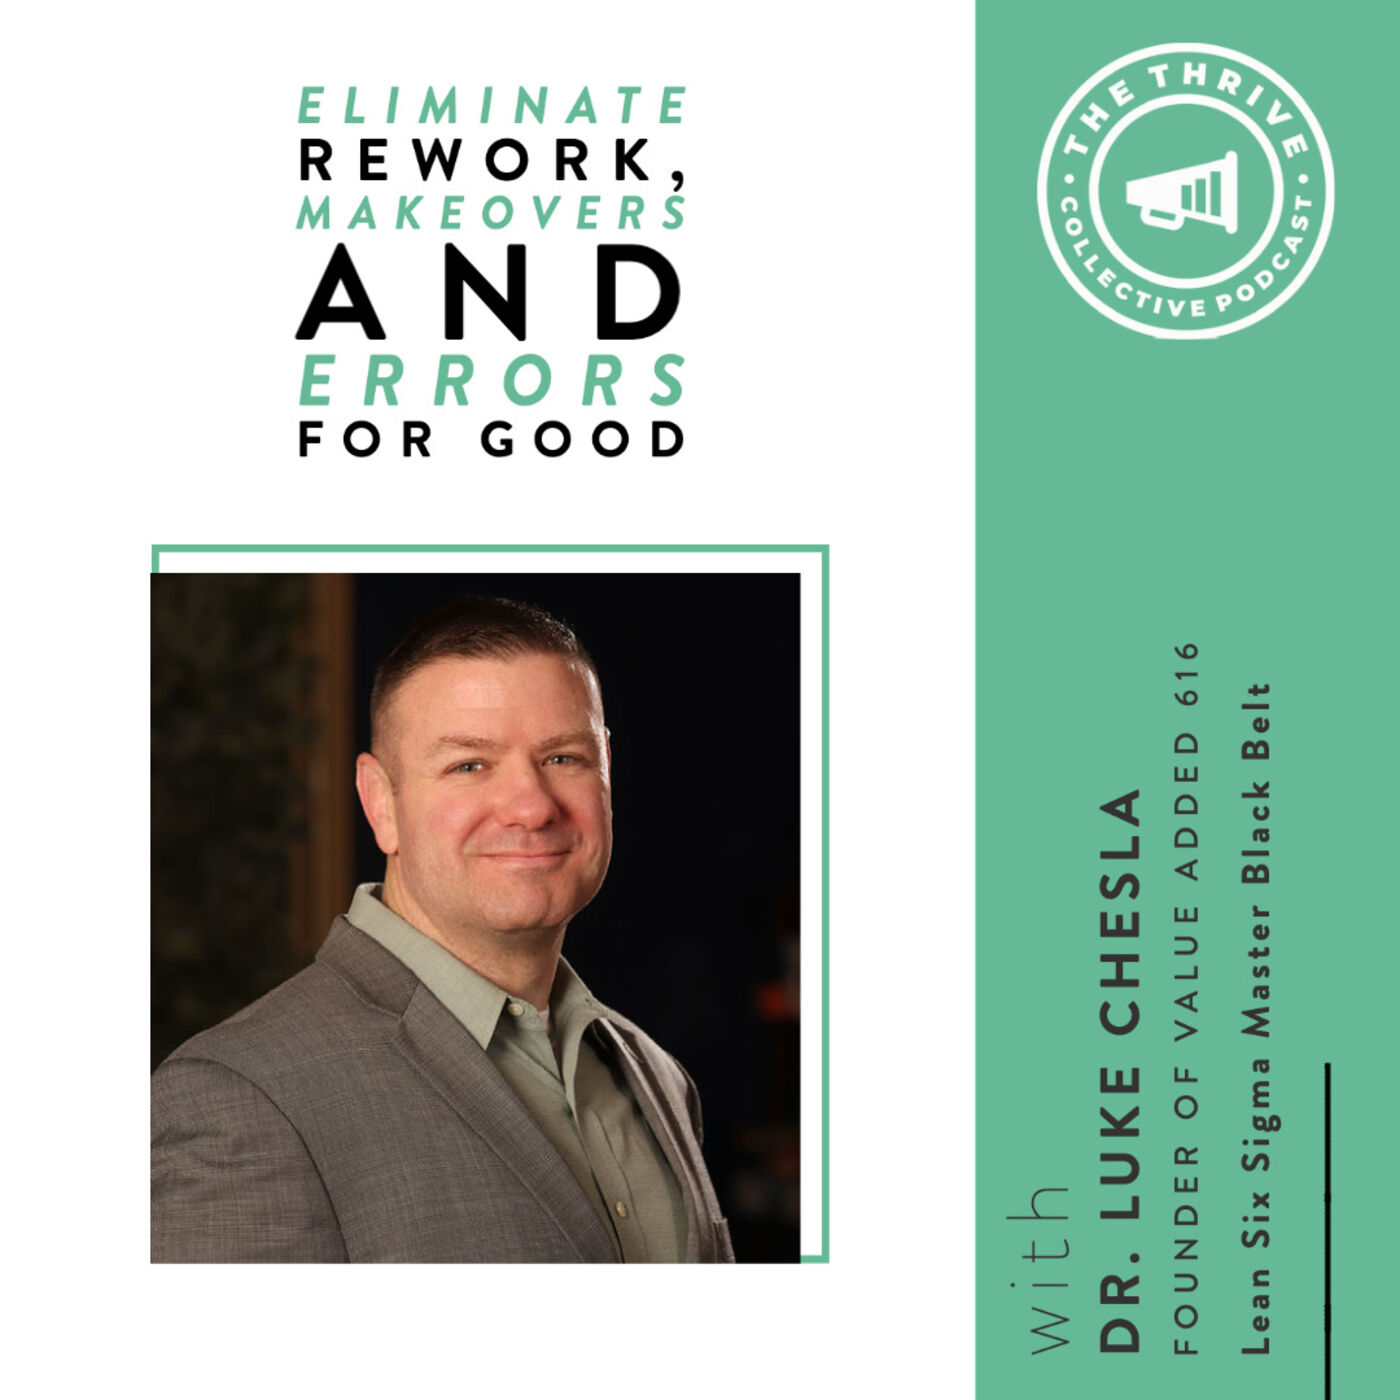 Eliminate Rework, Makeovers, and Errors for Good with Dr. Lucas Chesla